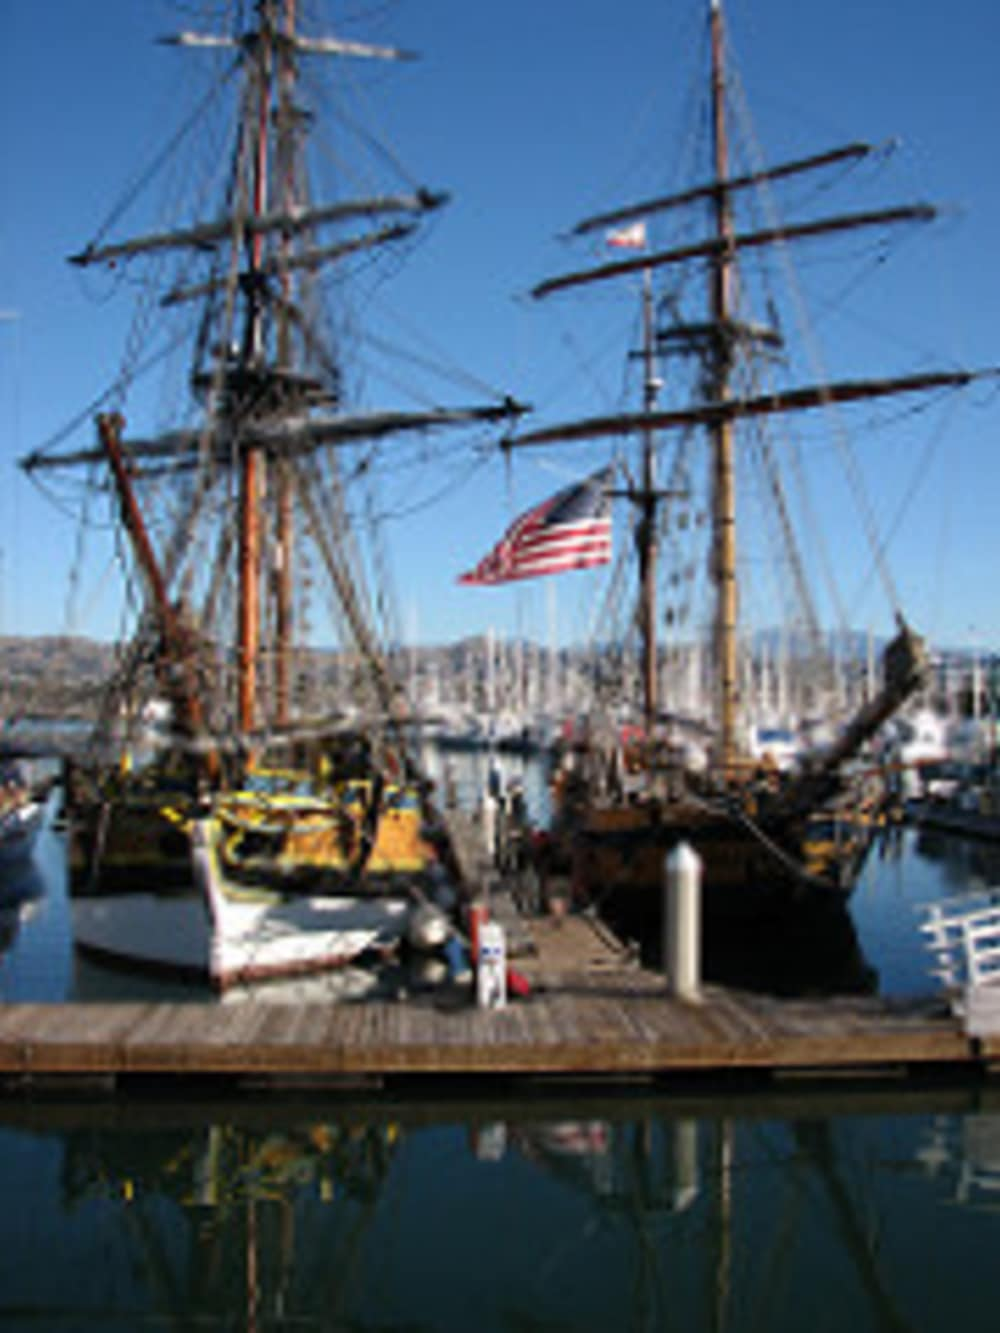 Long Beach, Washington's Warm Weather Welcomes The Hawaiian Chieftain and The Lady Washington